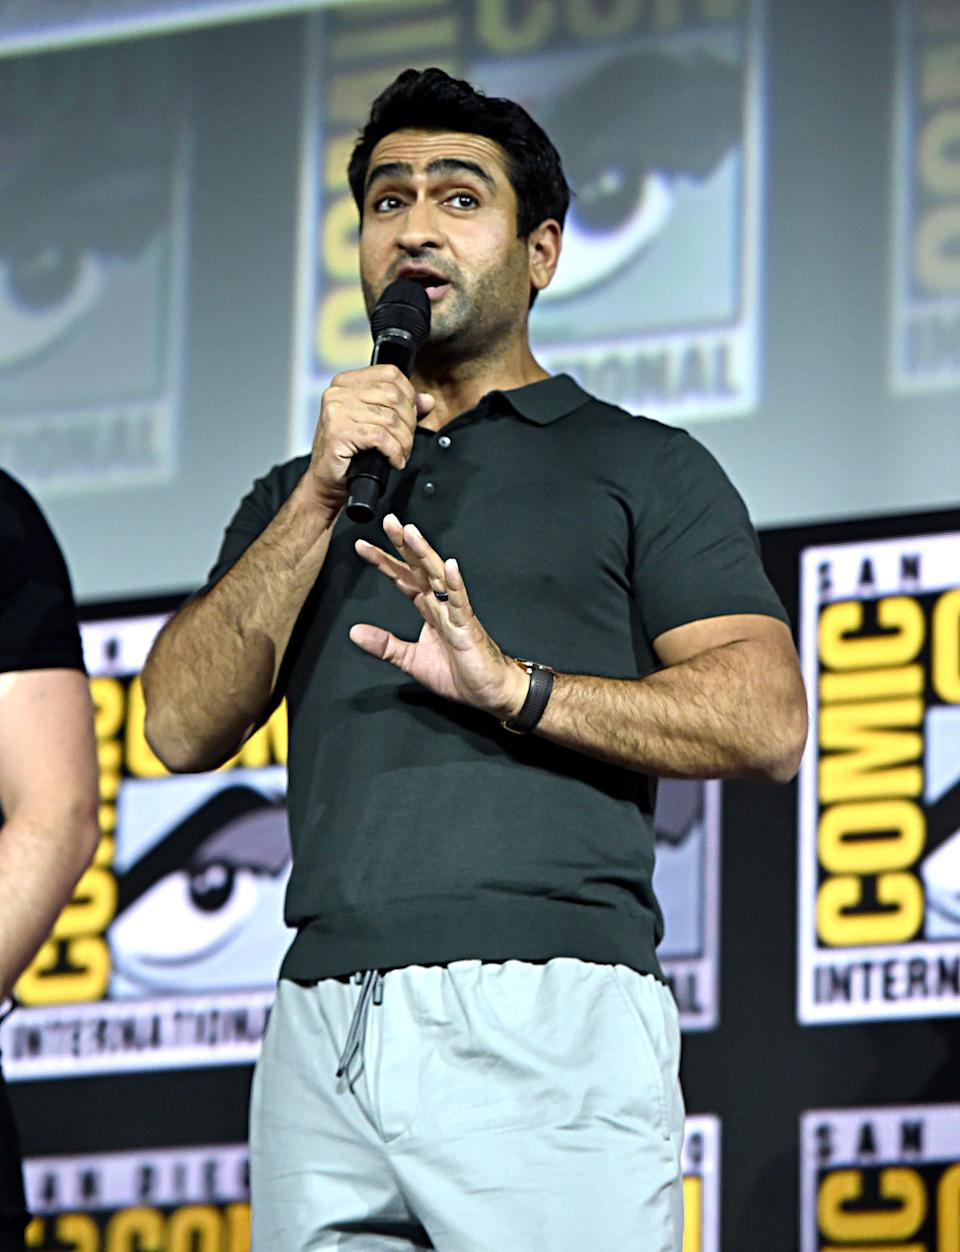 """""""Eternals"""" star Kumail Nanjiani speaking on stage at San Diego Comic-Con in 2019."""